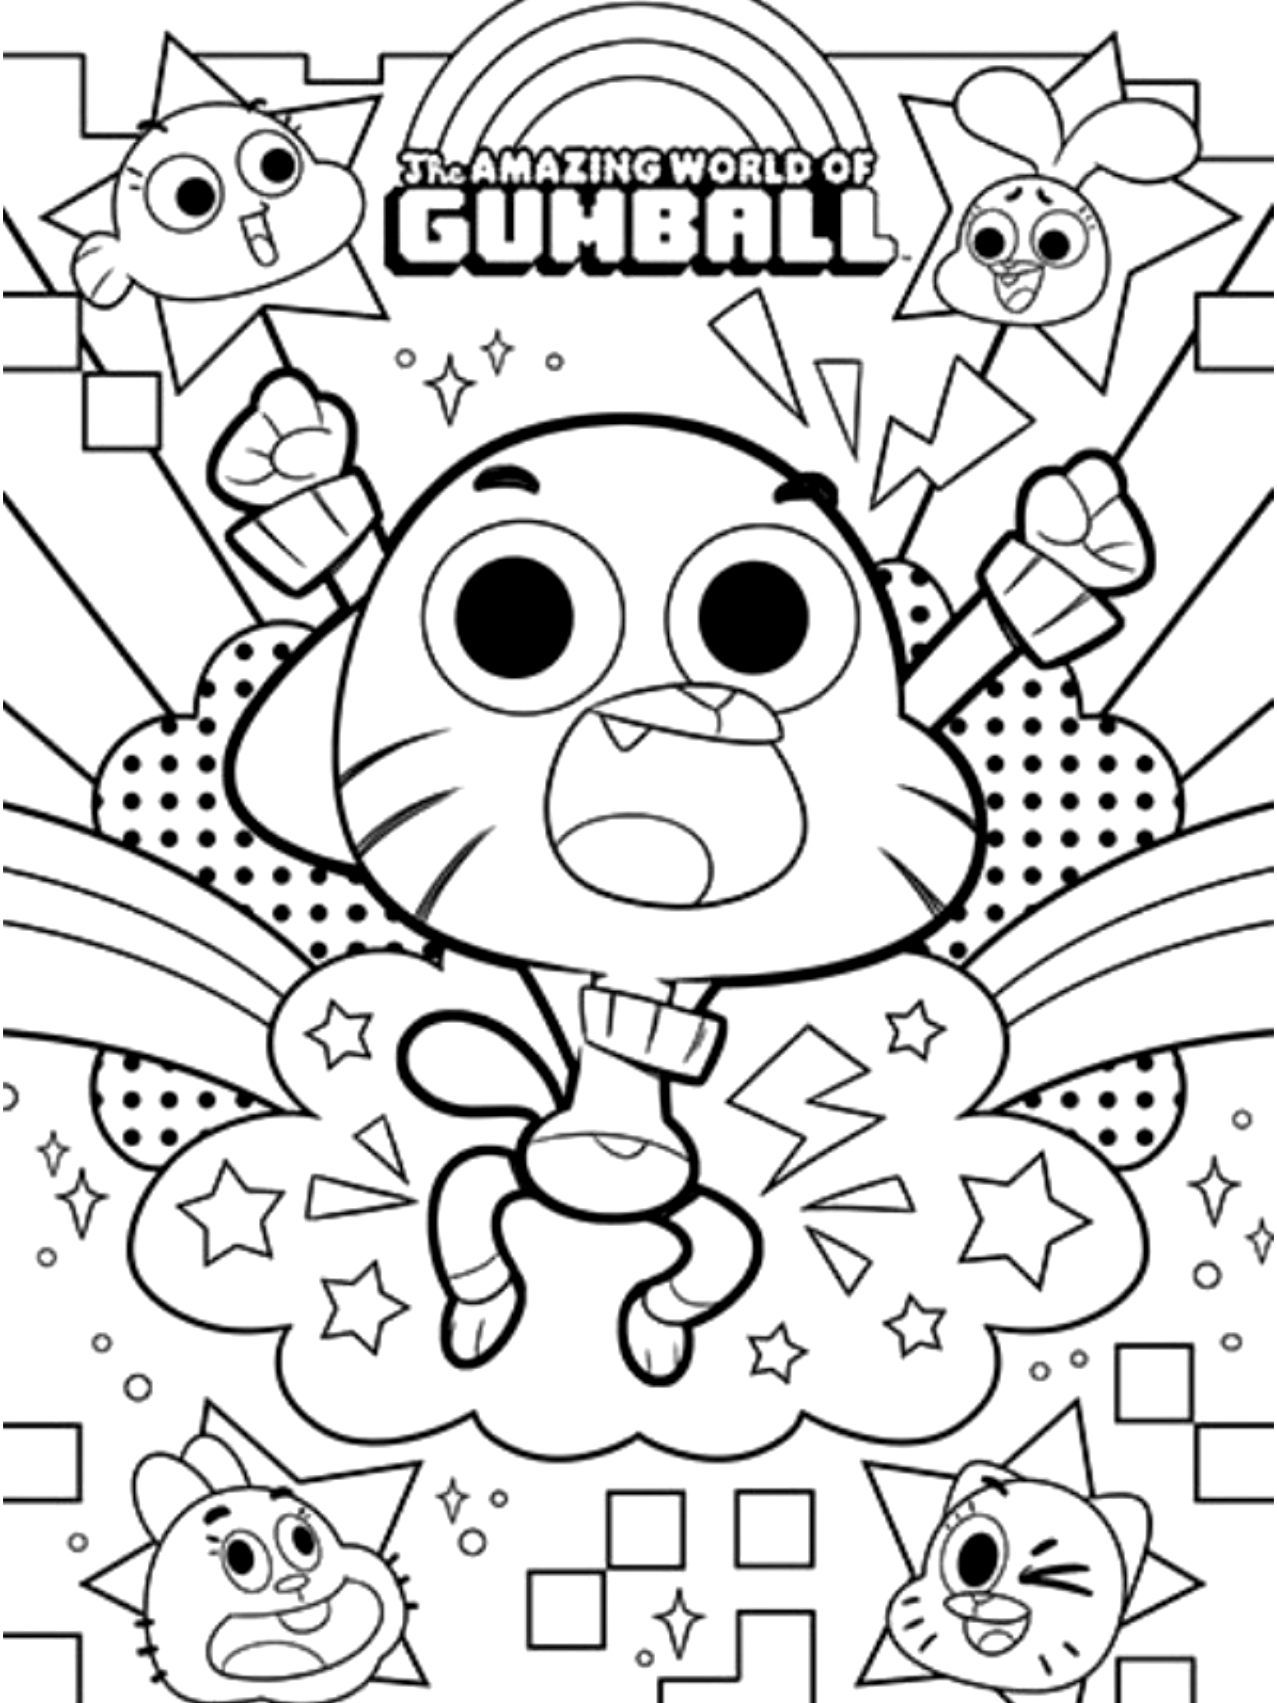 Pin By Ben Hammouda Raoudha On Coloring Pages Birthday Coloring Pages The Amazing World Of Gumball World Of Gumball